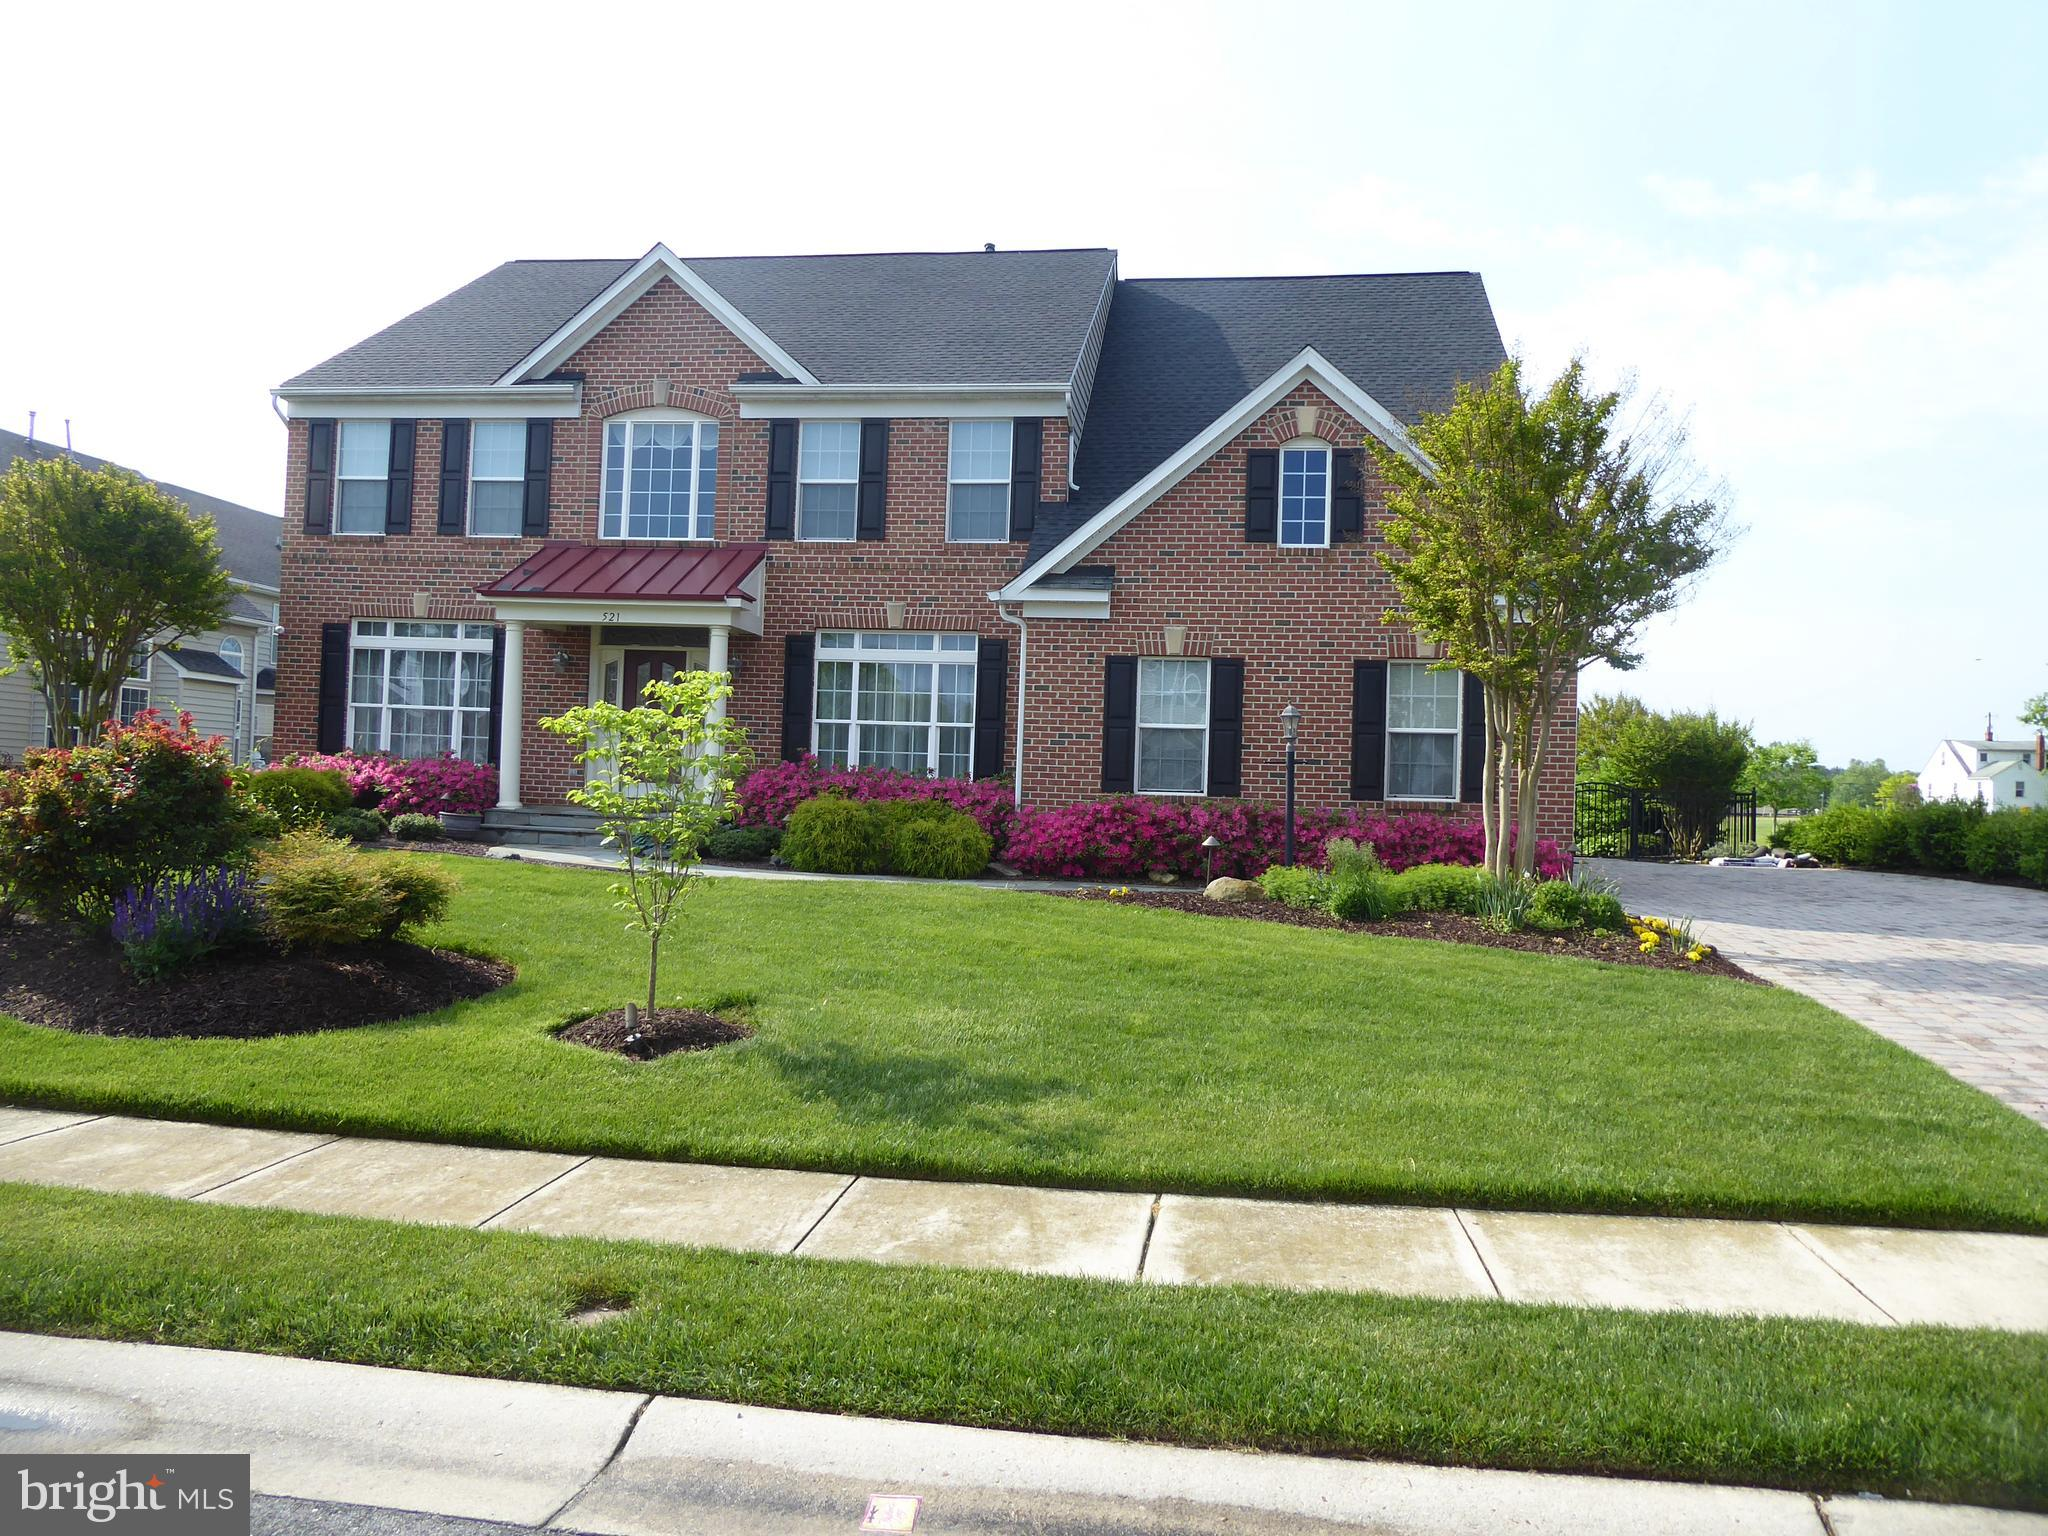 521 WET SAND DRIVE, SEVERN, MD 21144